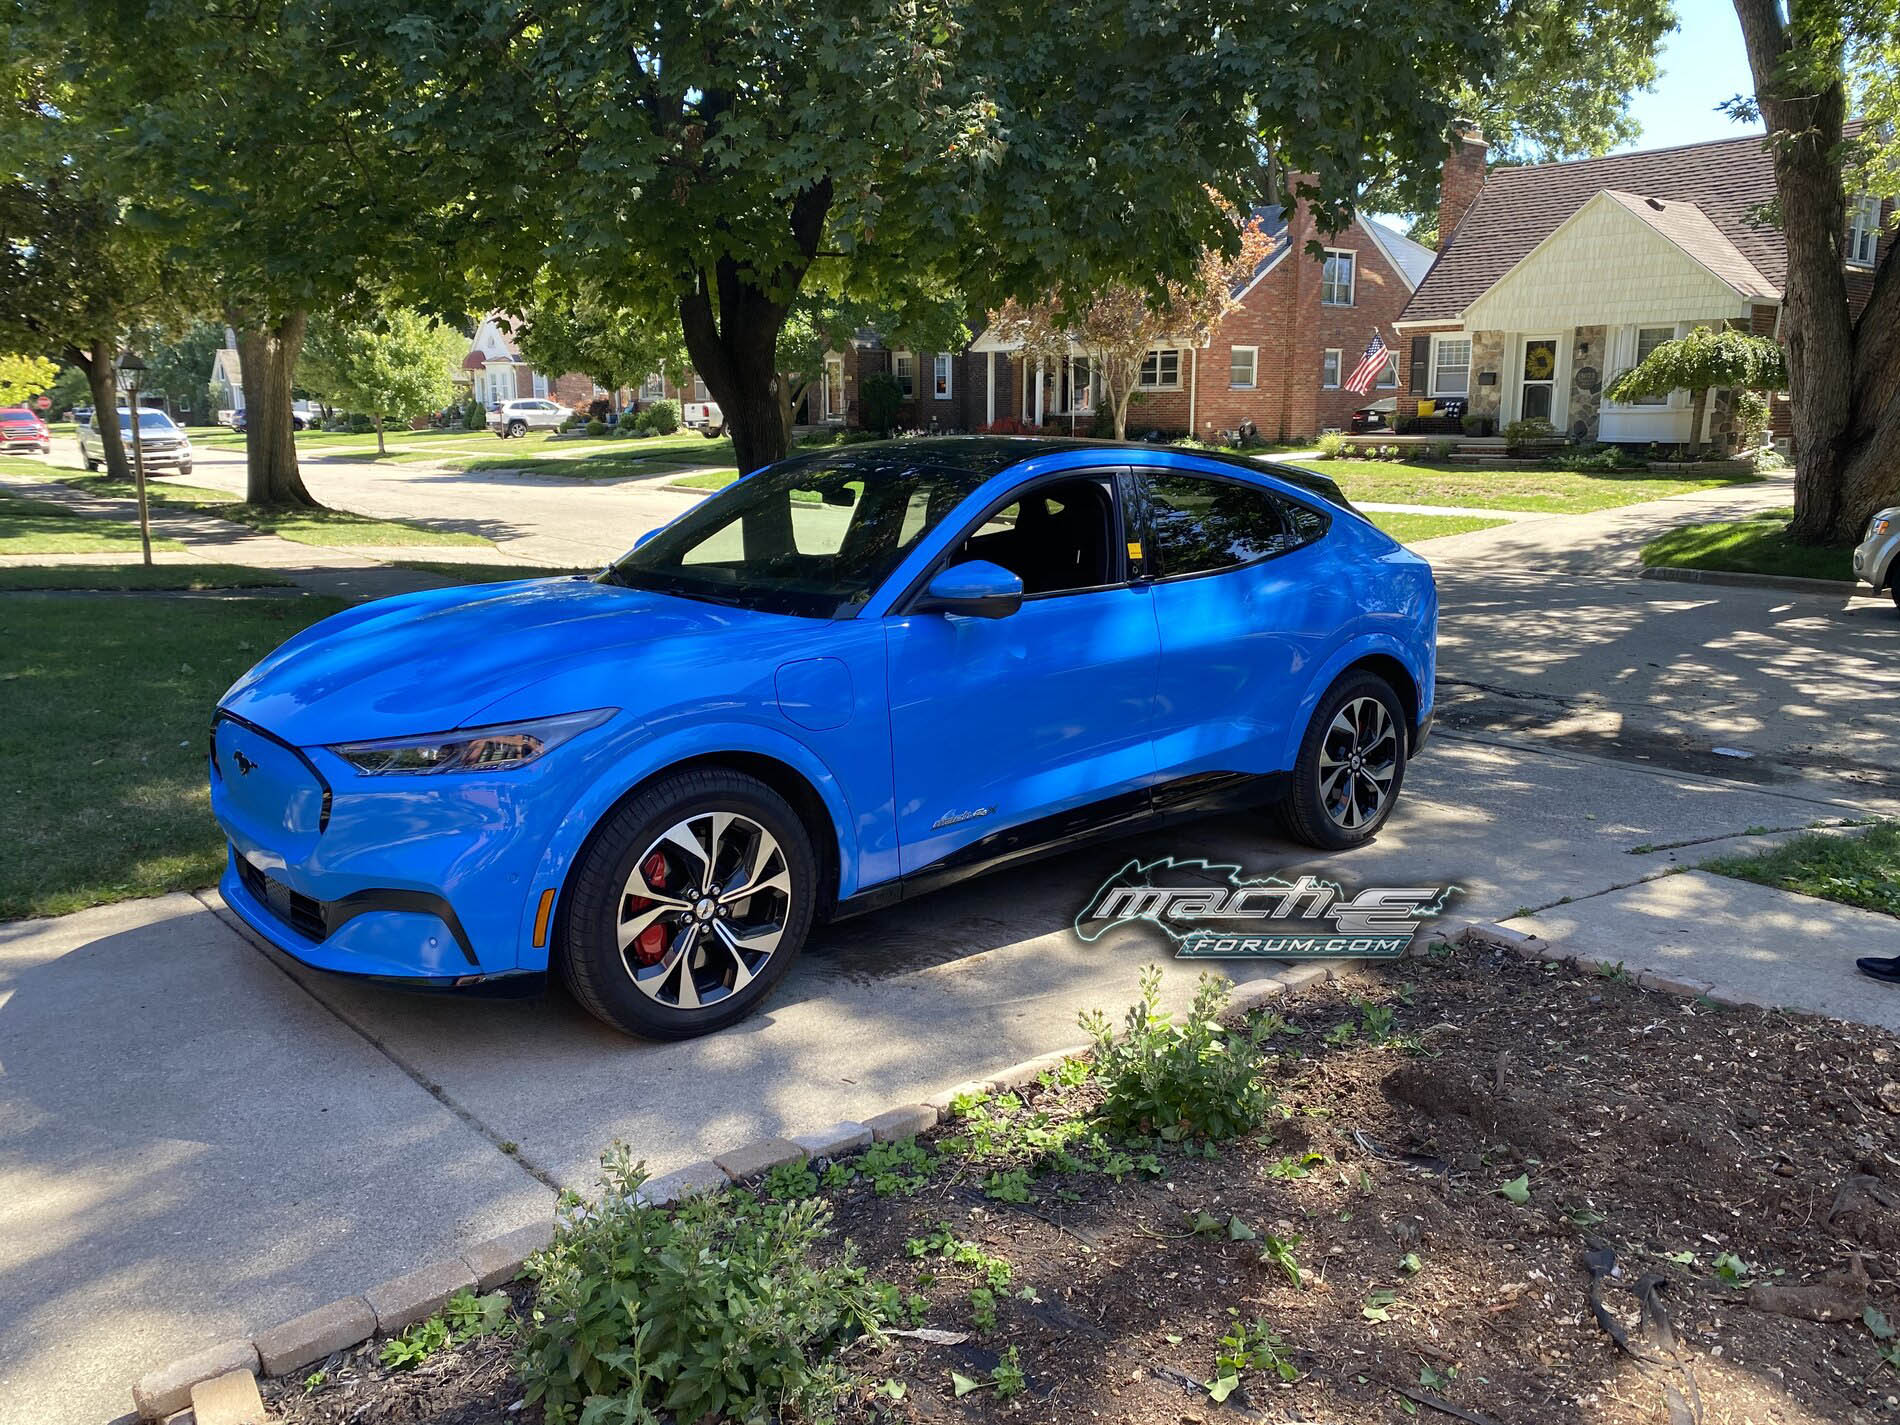 Grabber Blue Mach-E First Edition Pic 1.jpg